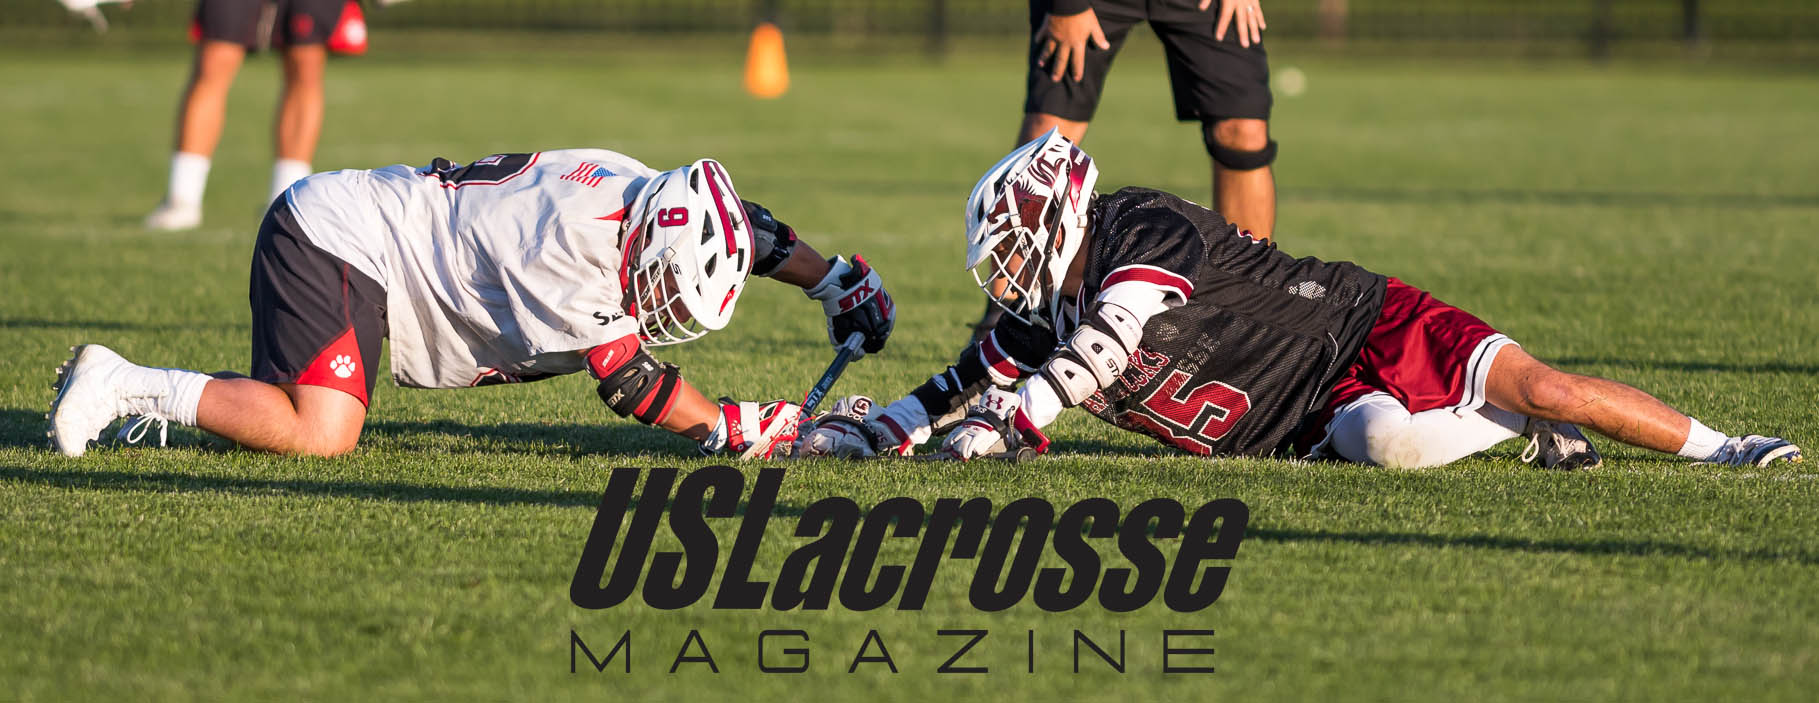 US Lacrosse Drops MCLA-I Rankings